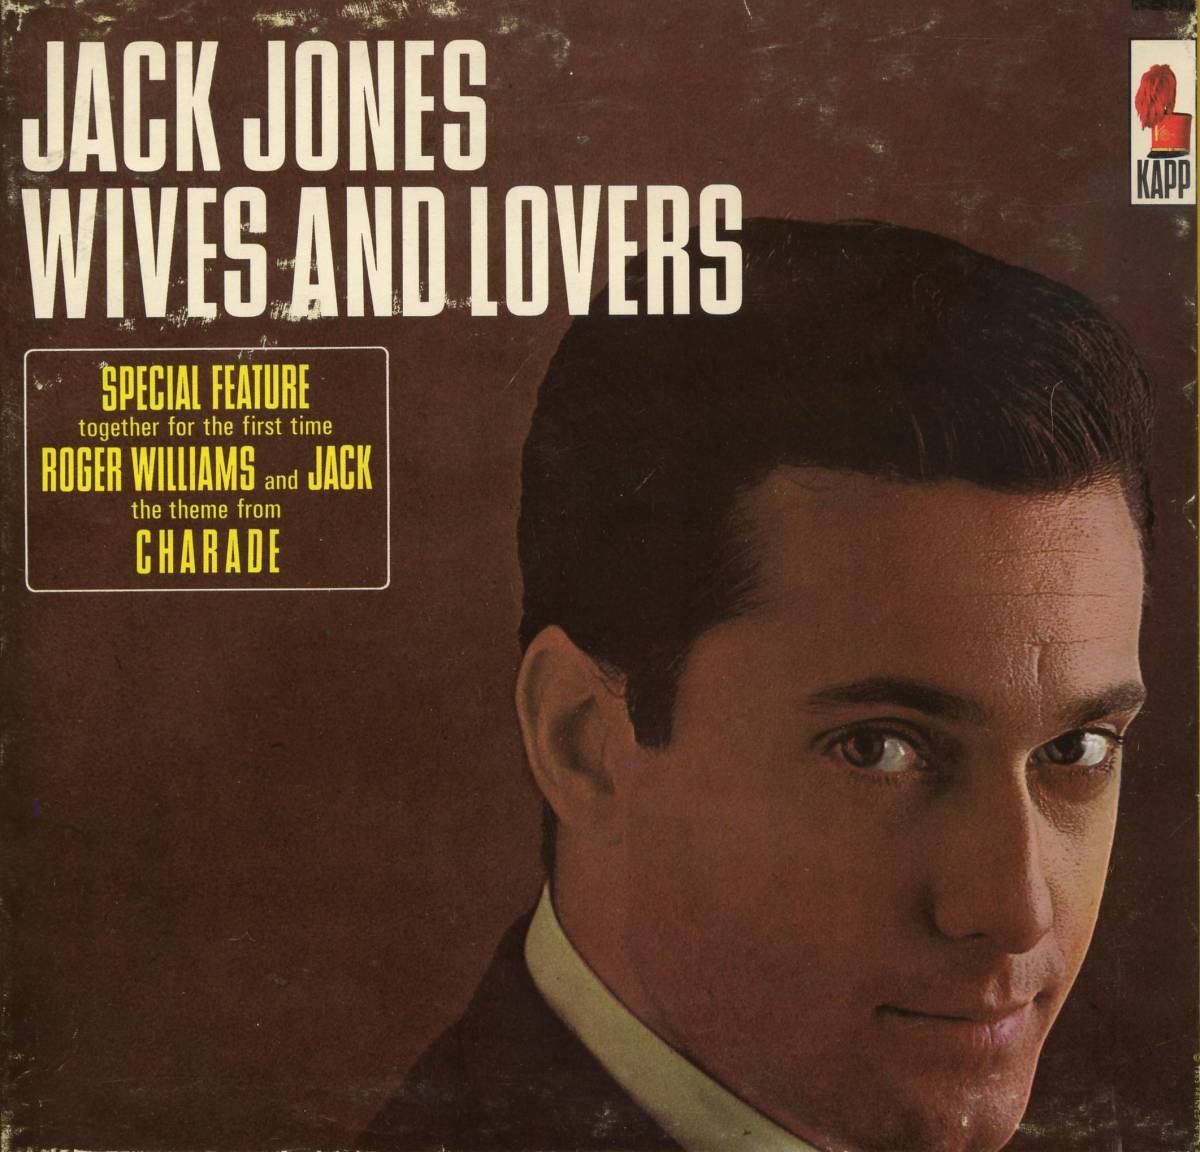 Jack Jones- There's something of a Don Draper about him, aint there?